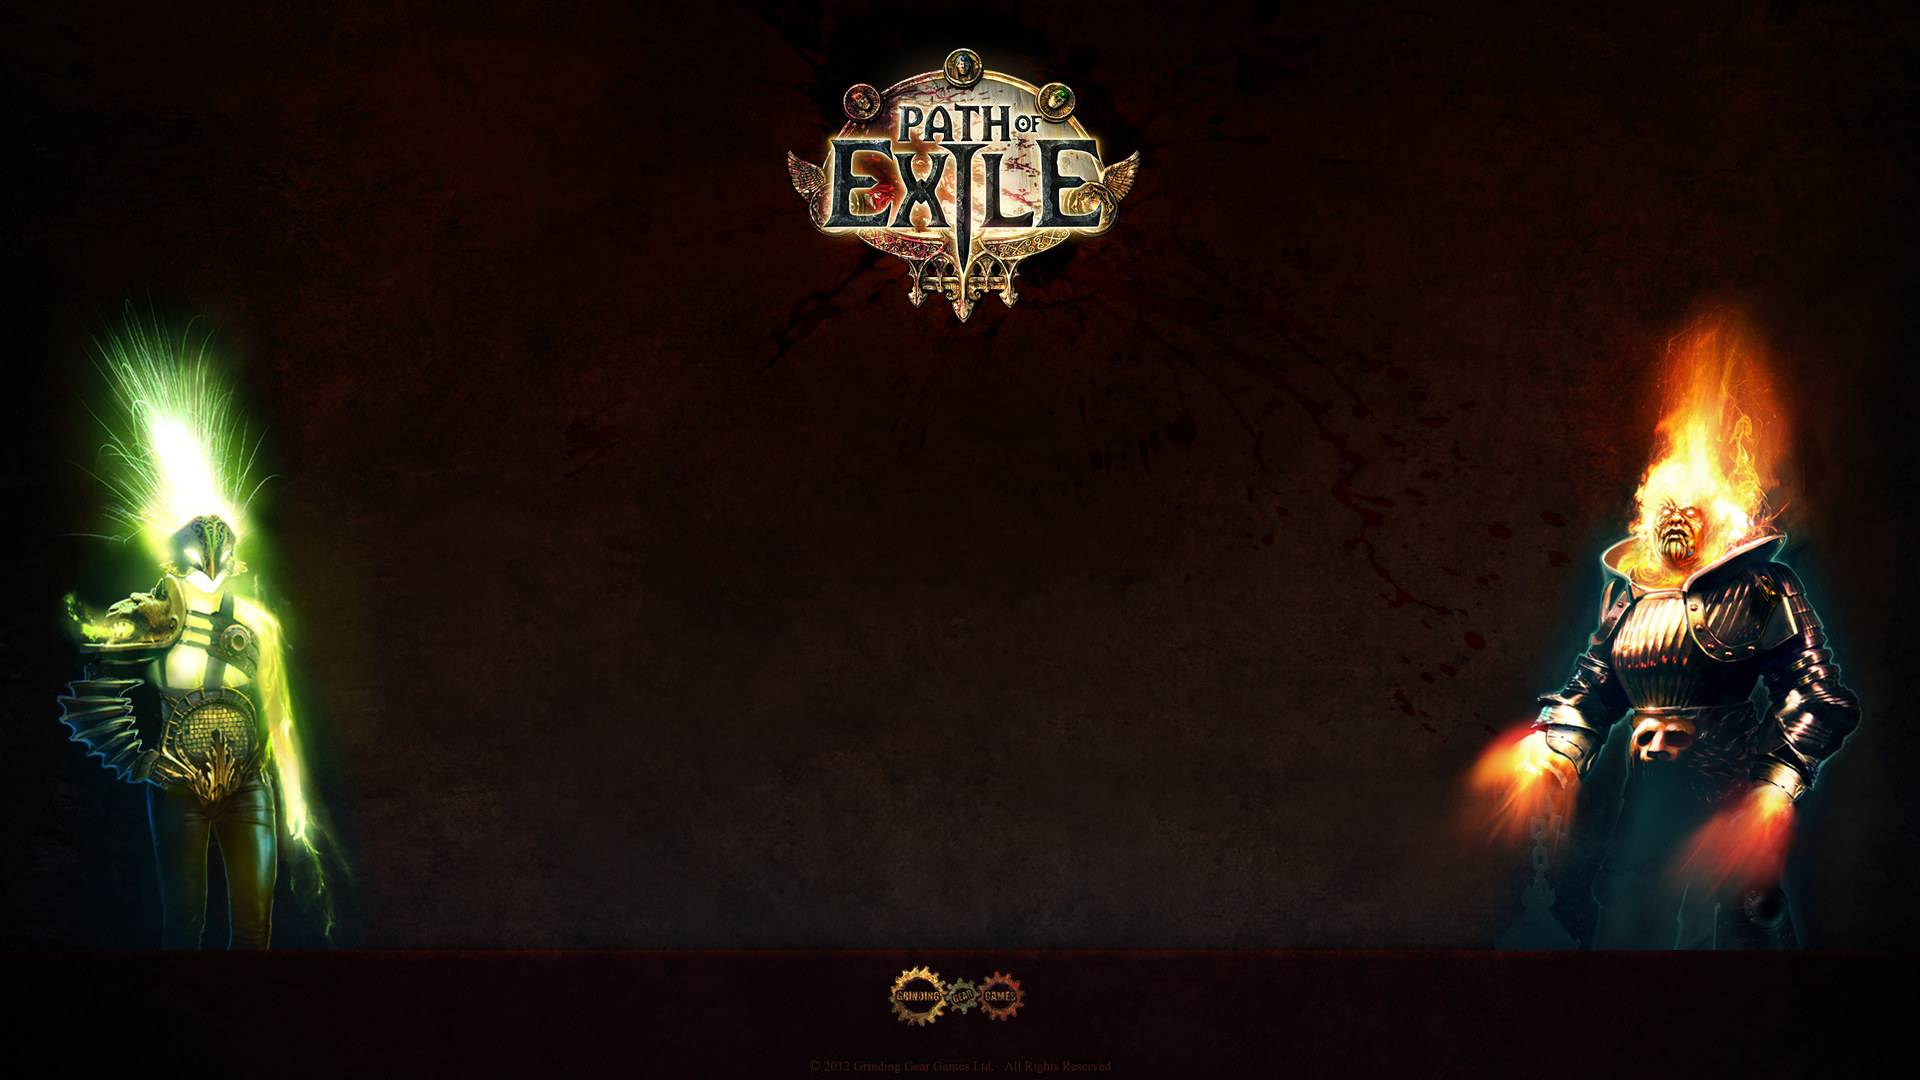 Poe Fall Of Oriath Wallpapers Path Of Exile Wallpapers